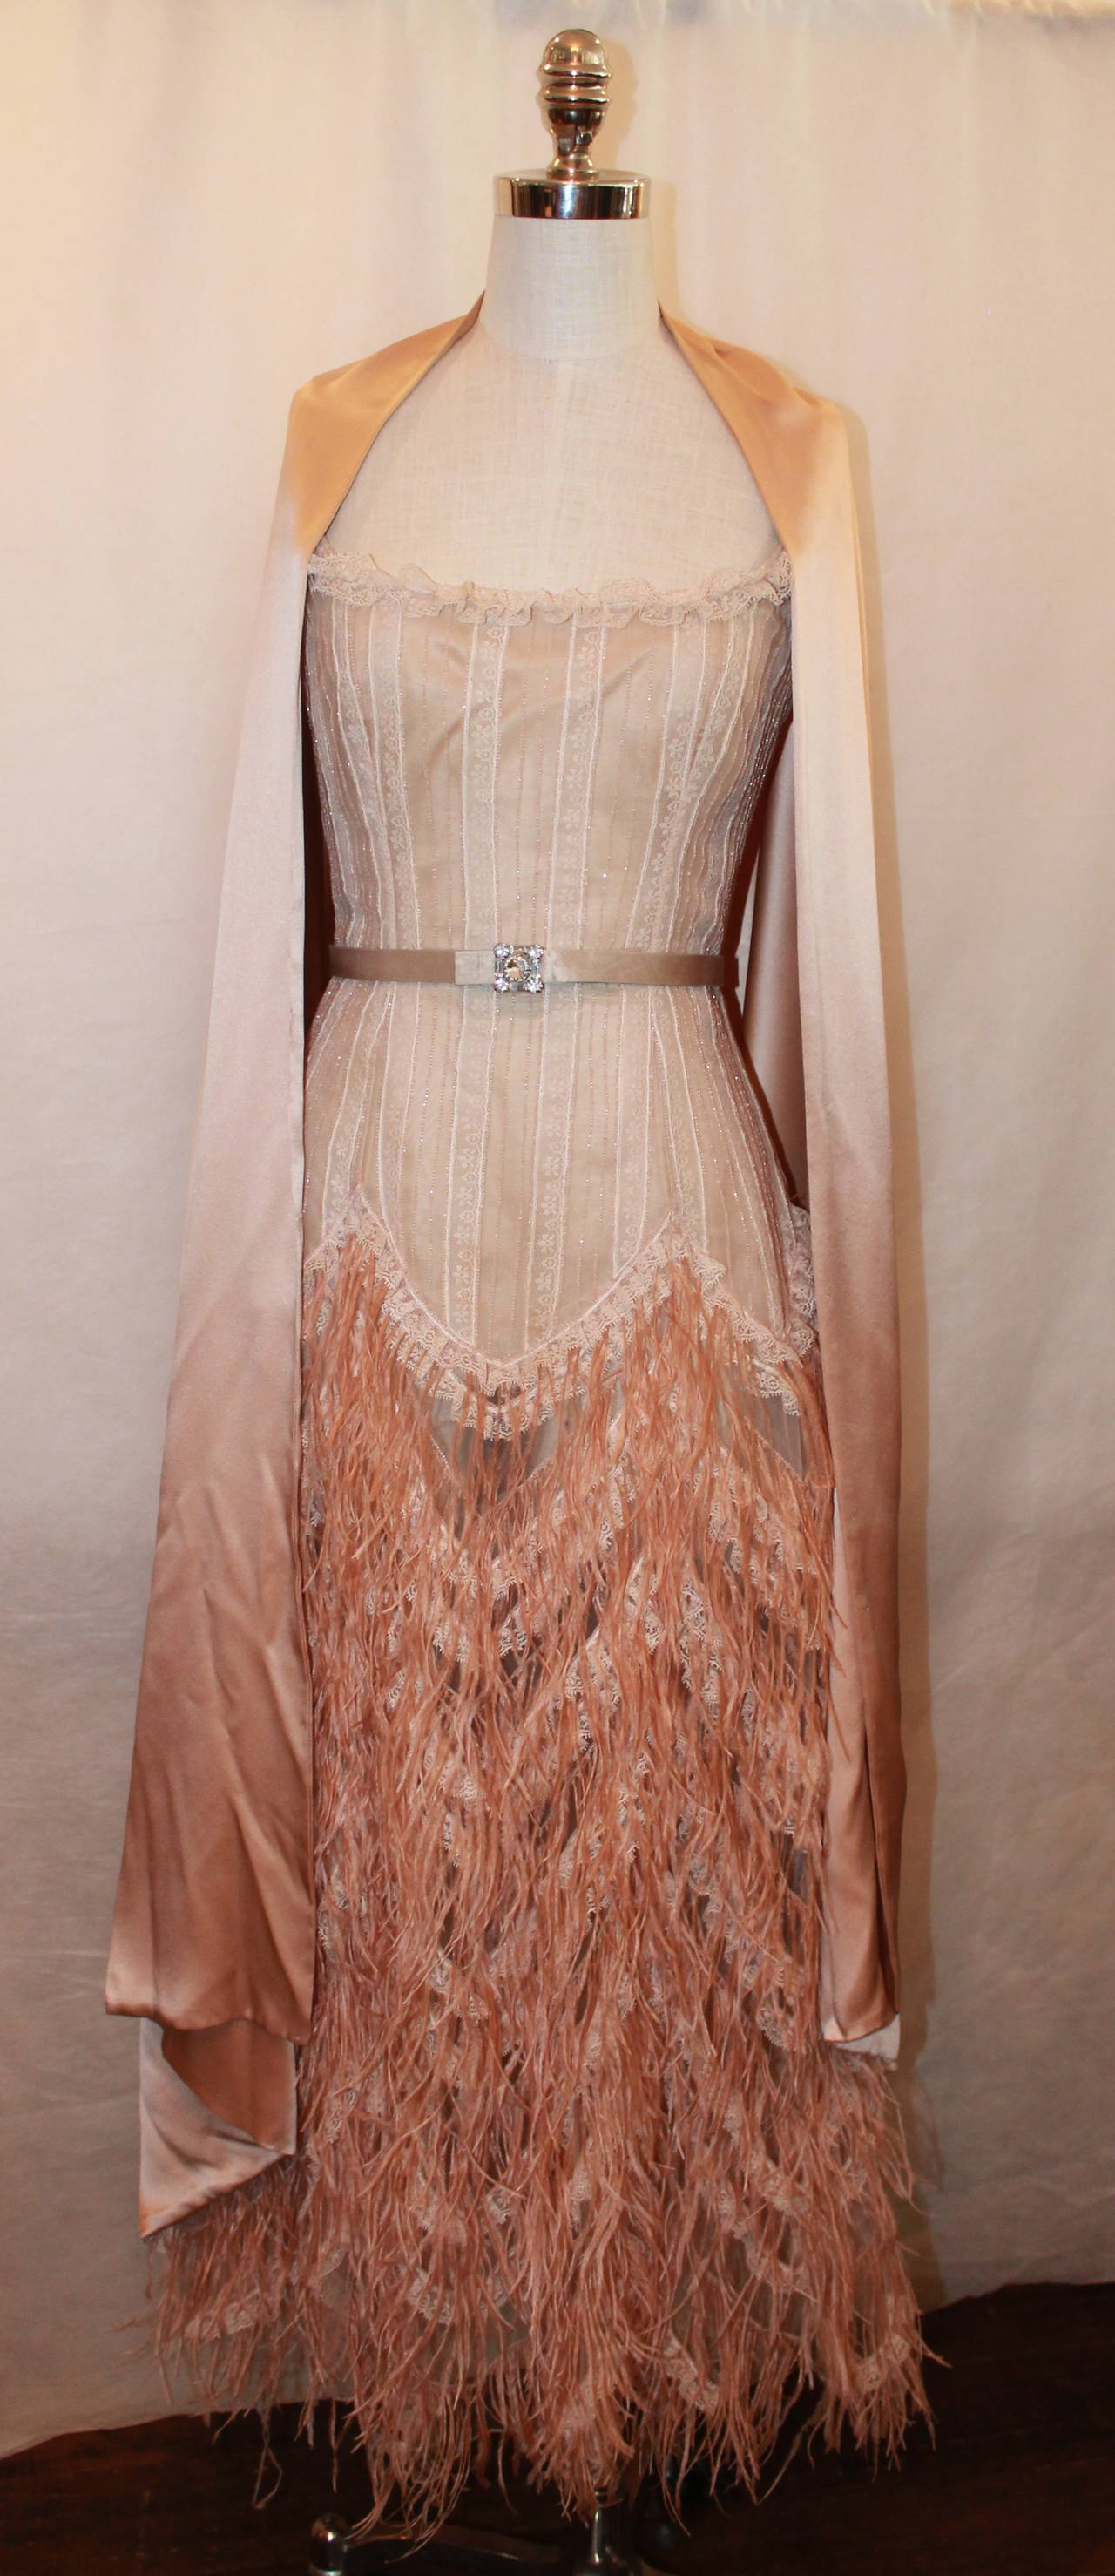 Oscar de la Renta Blush Lace Beaded Gown with Ostrich Feathers & Shawl - M 6